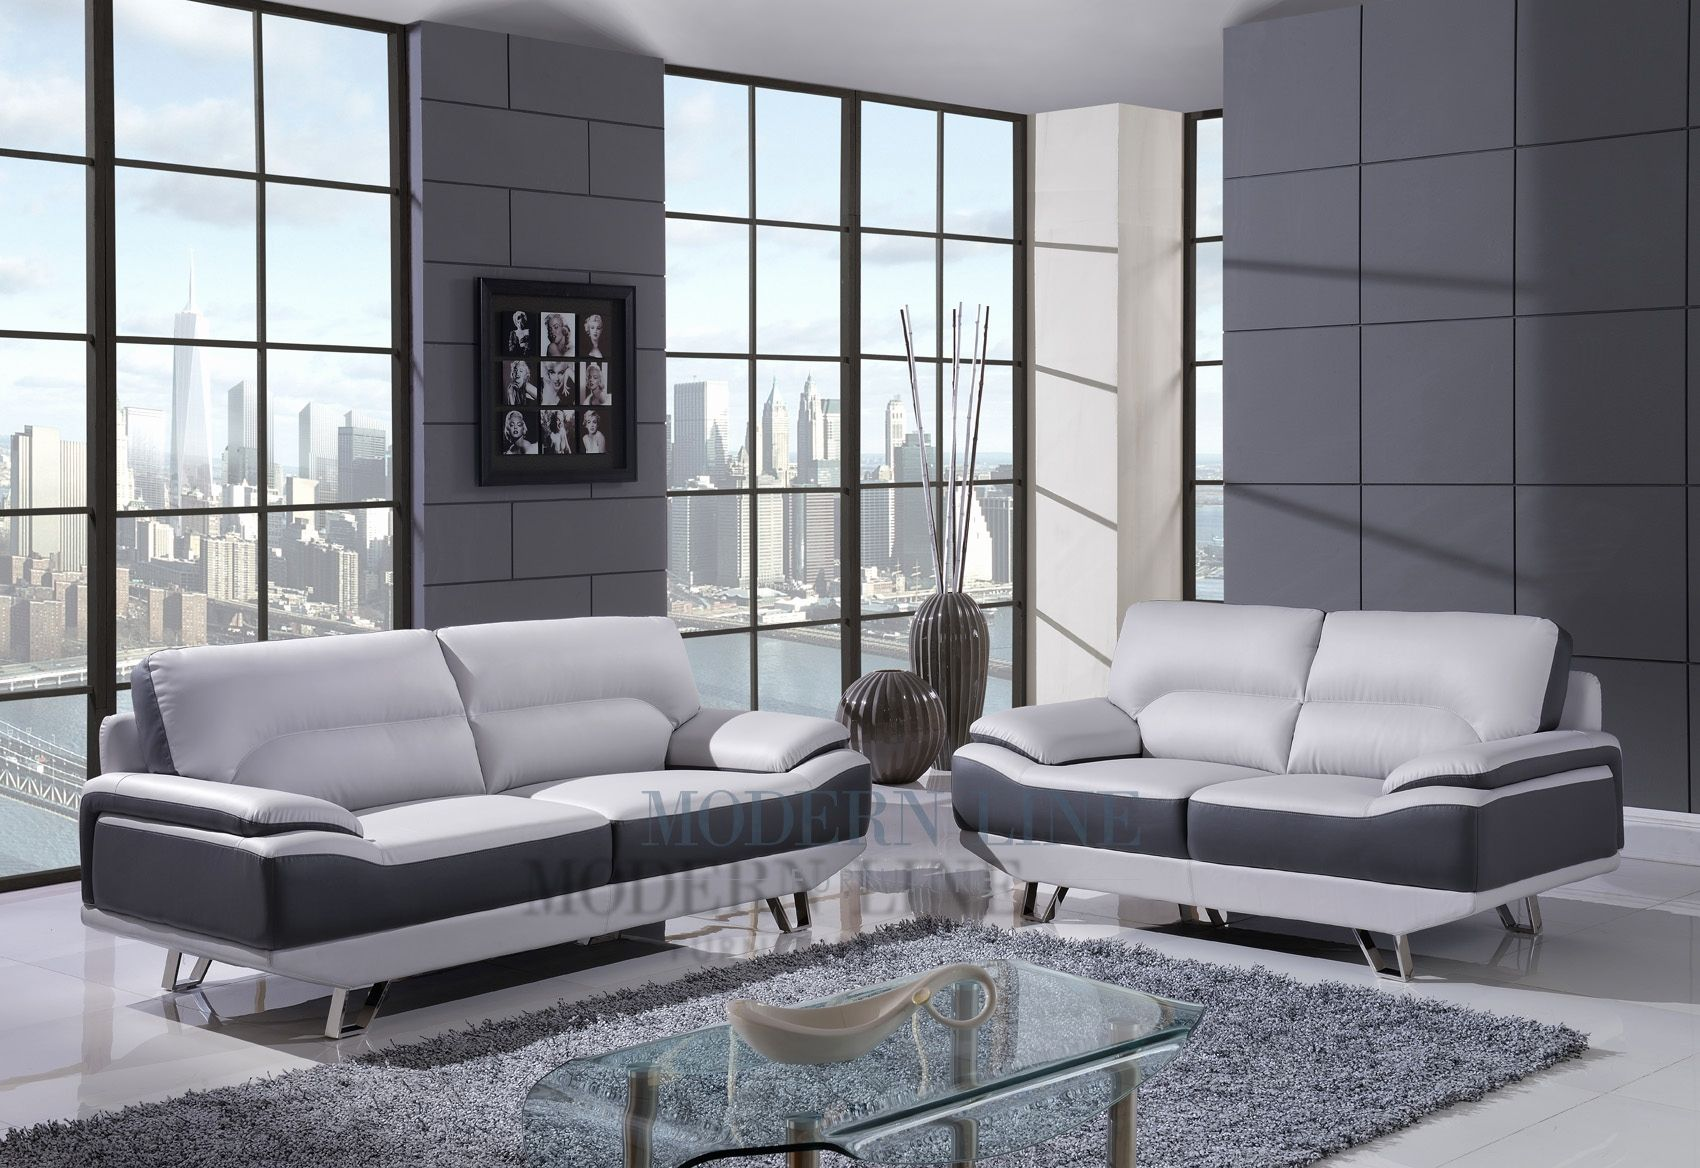 Best Of Modern Sofa Set Pictures Modern Dual Tone Light Grey Dark